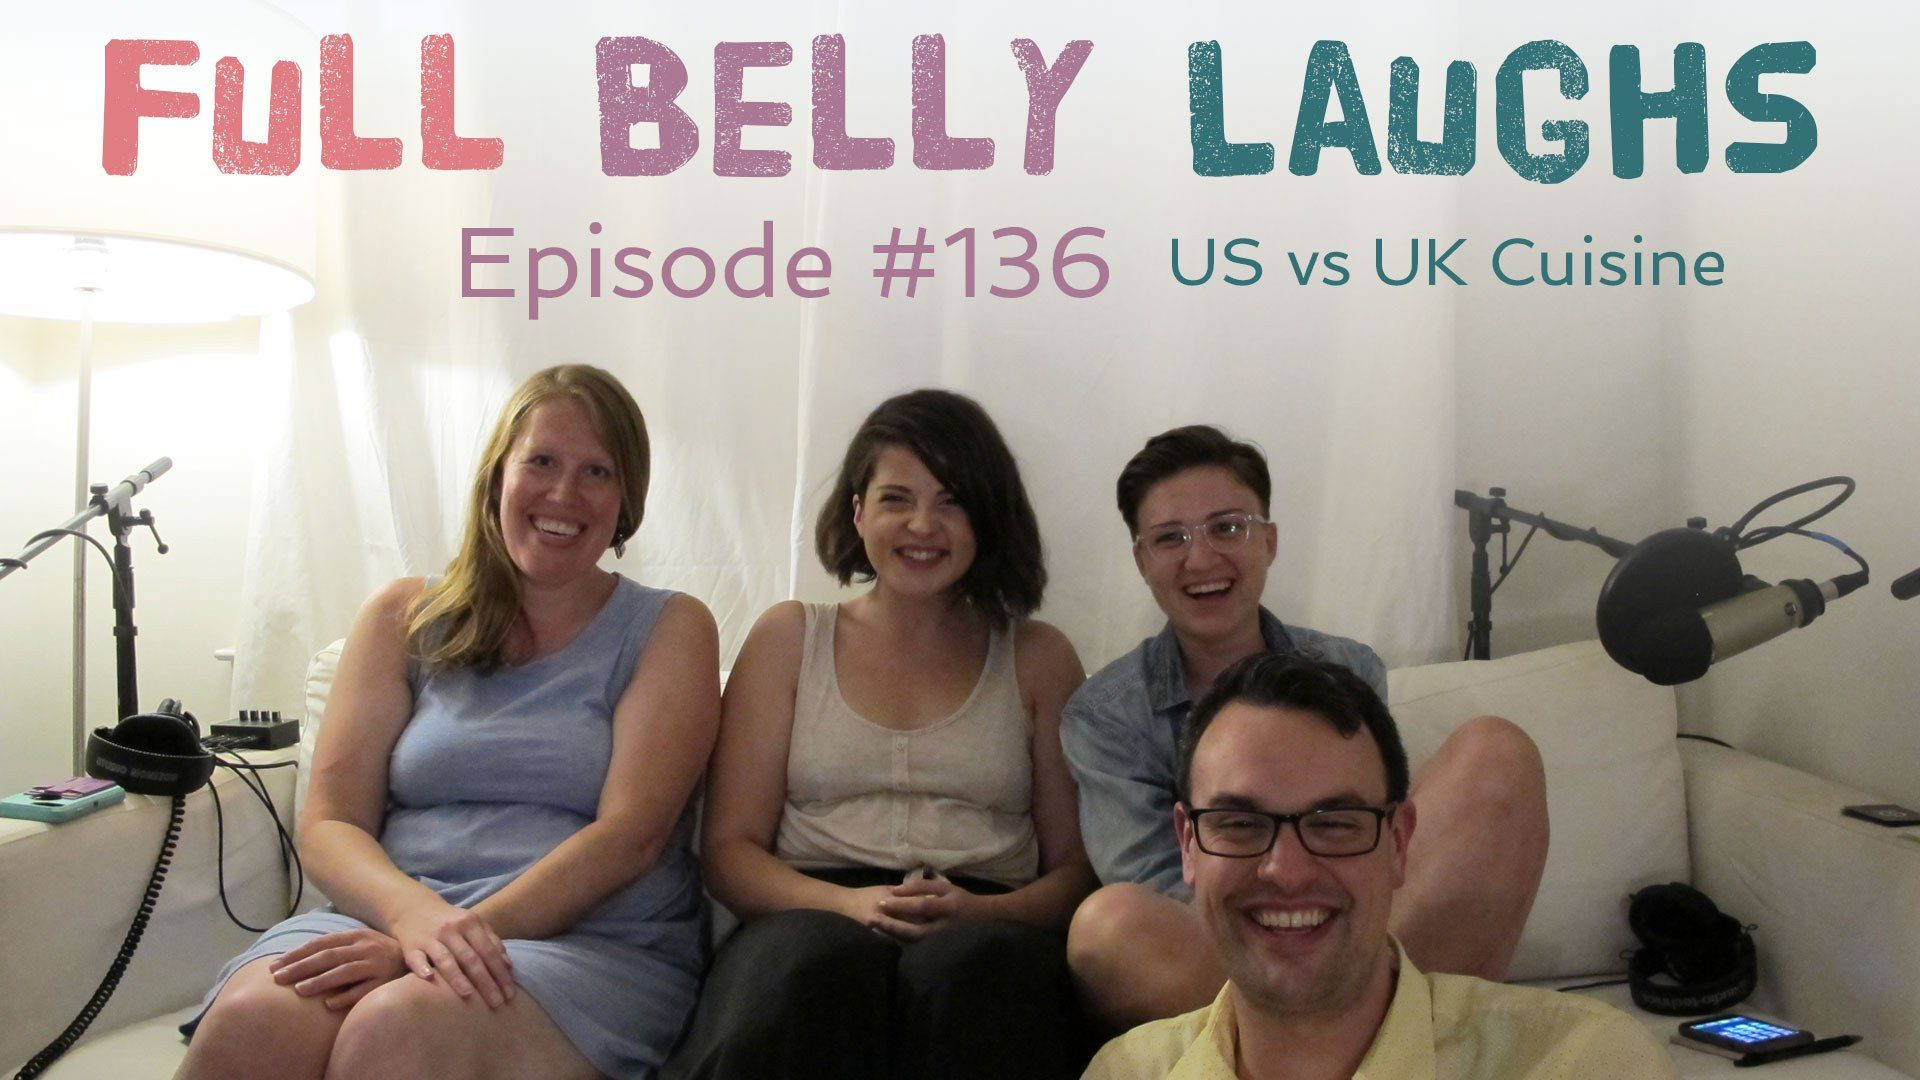 full belly laughs podcast episode 136 us vs uk cuisine audio artwork